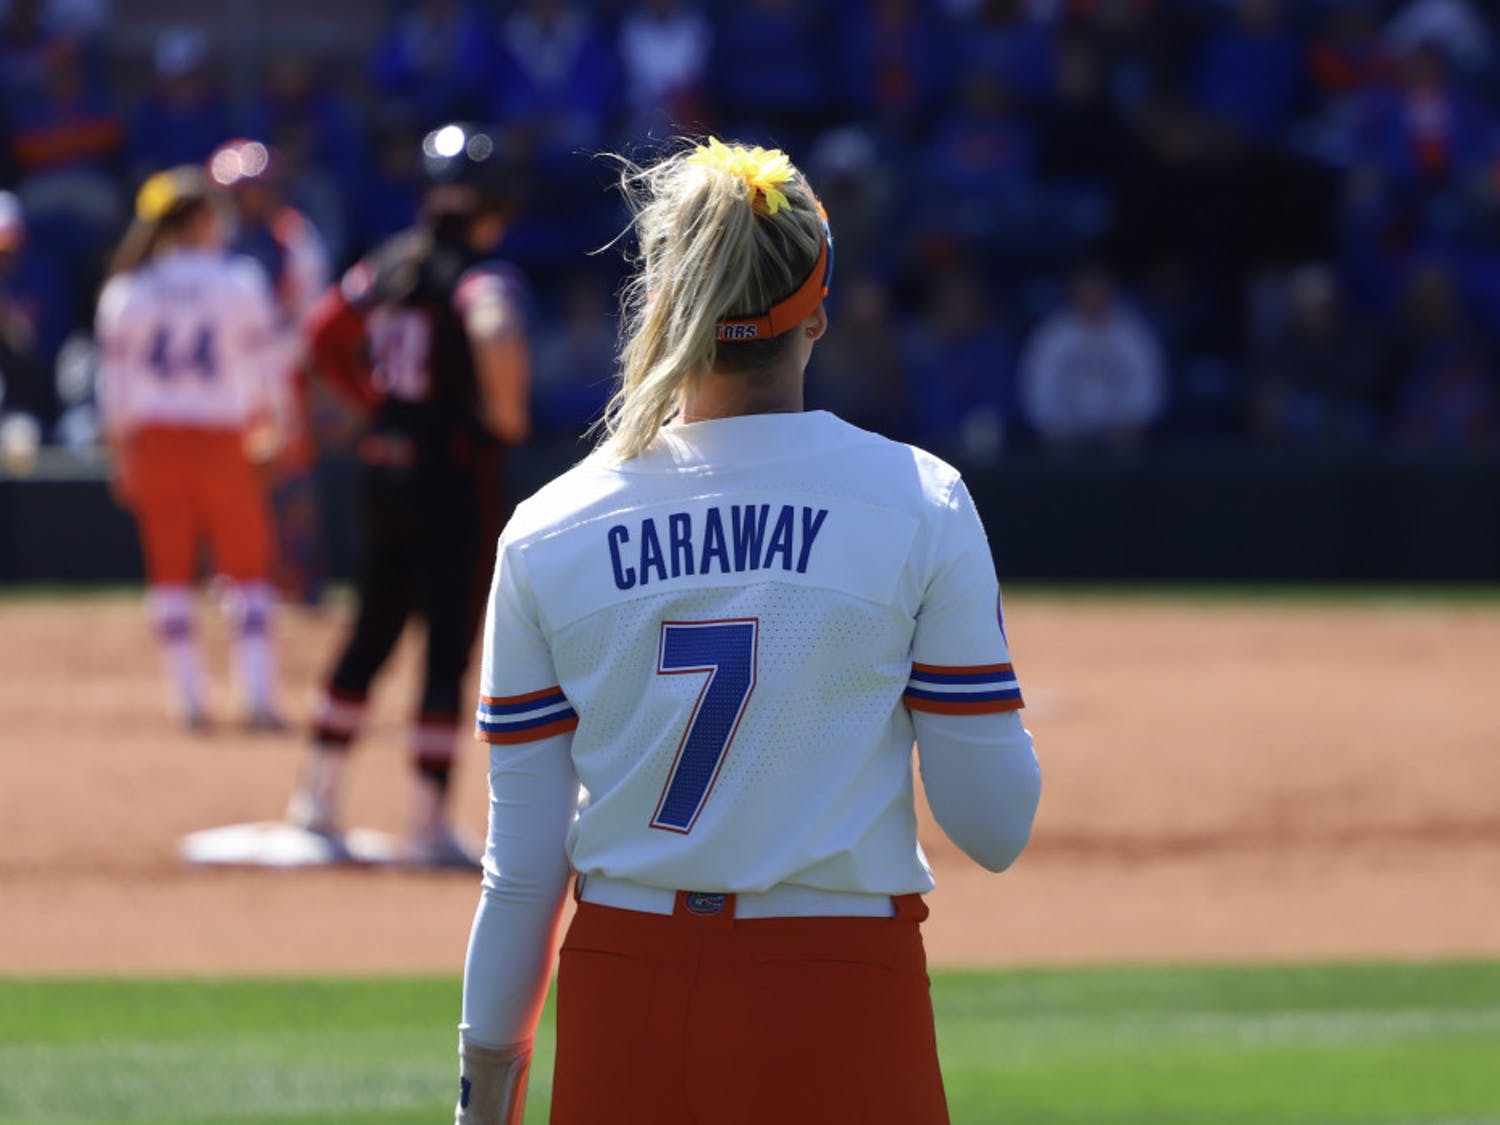 Jade Caraway stands in the outfield during the Gators' series versus the Louisiana Ragin' Cajuns last season.